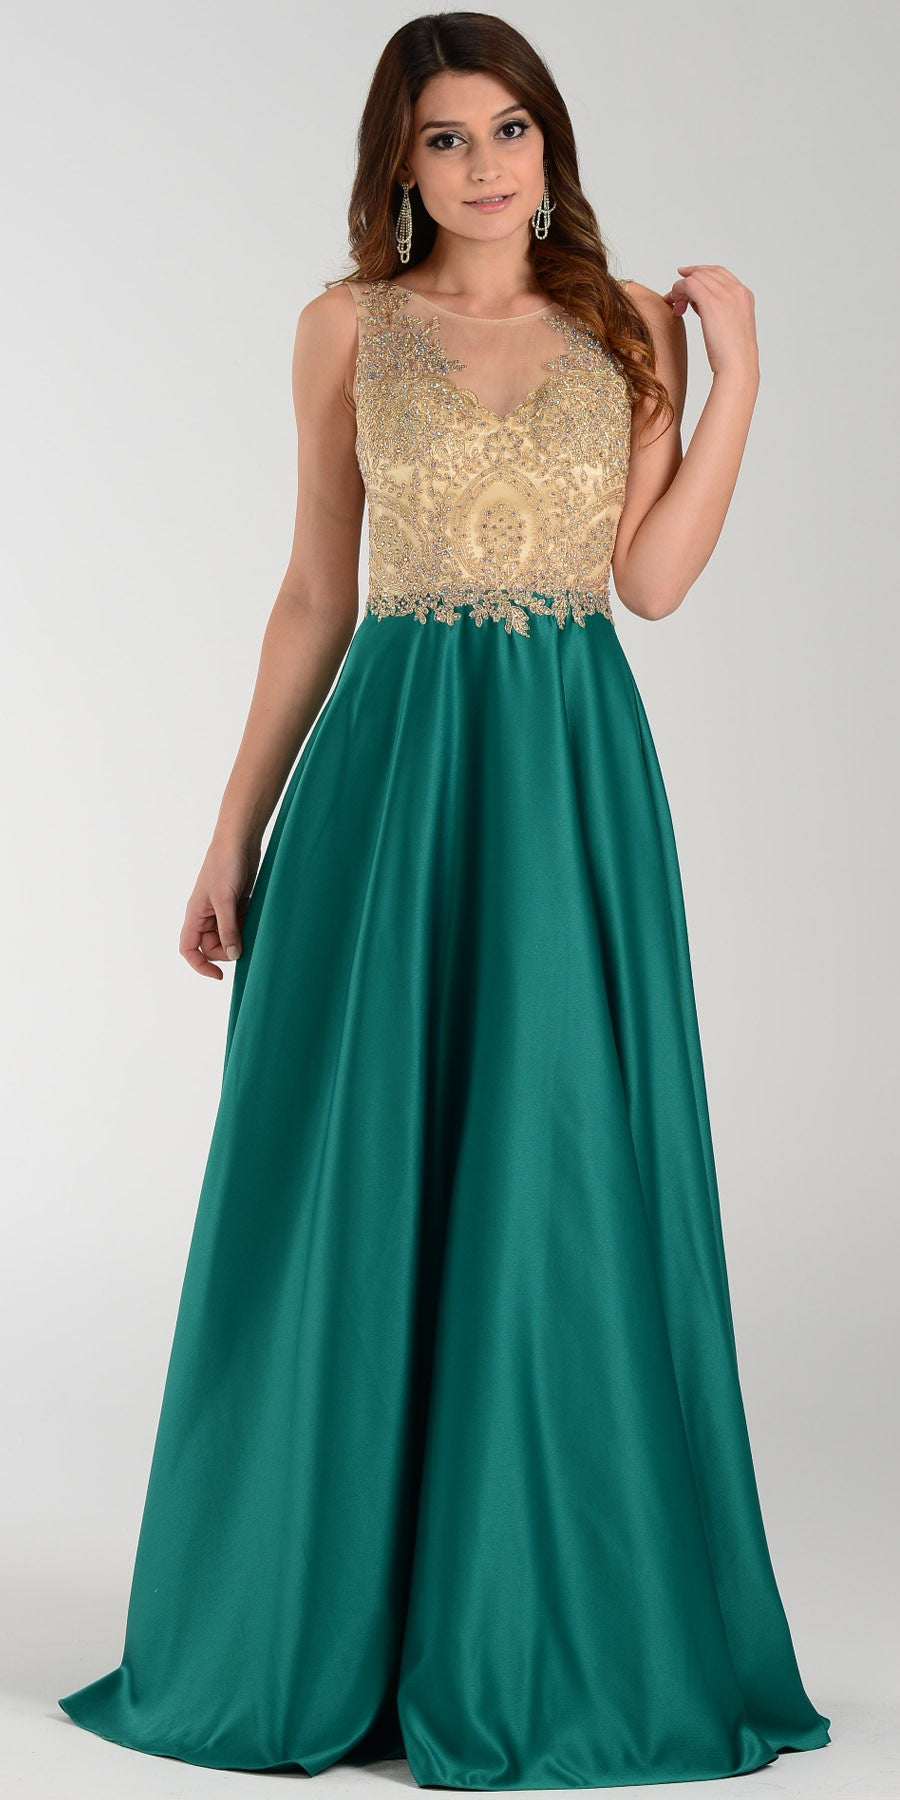 Poly Usa 7494 Long Satin A Line Prom Gown Emerald Green Lace